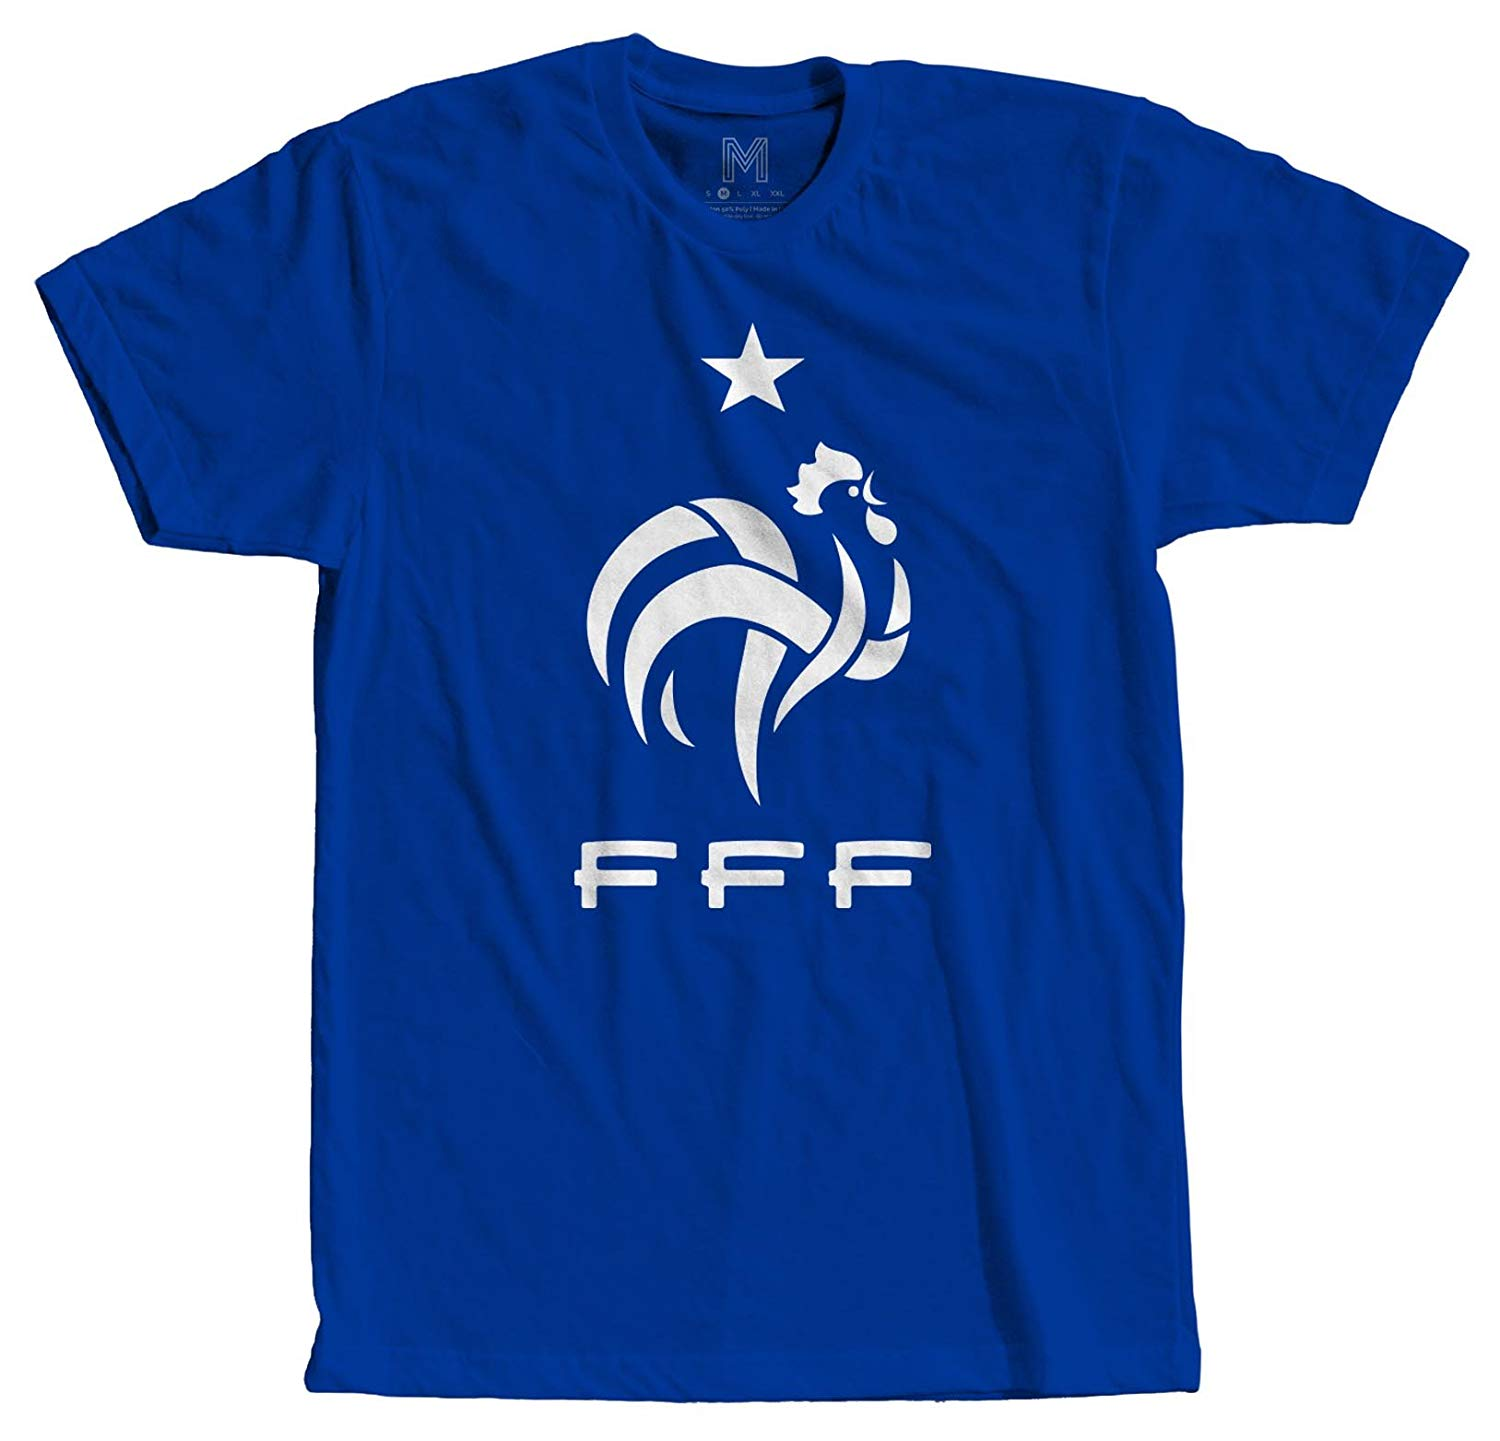 Sac Apparel France Soccer Team Sports Tees Men Graphic Vinyl T Shirt